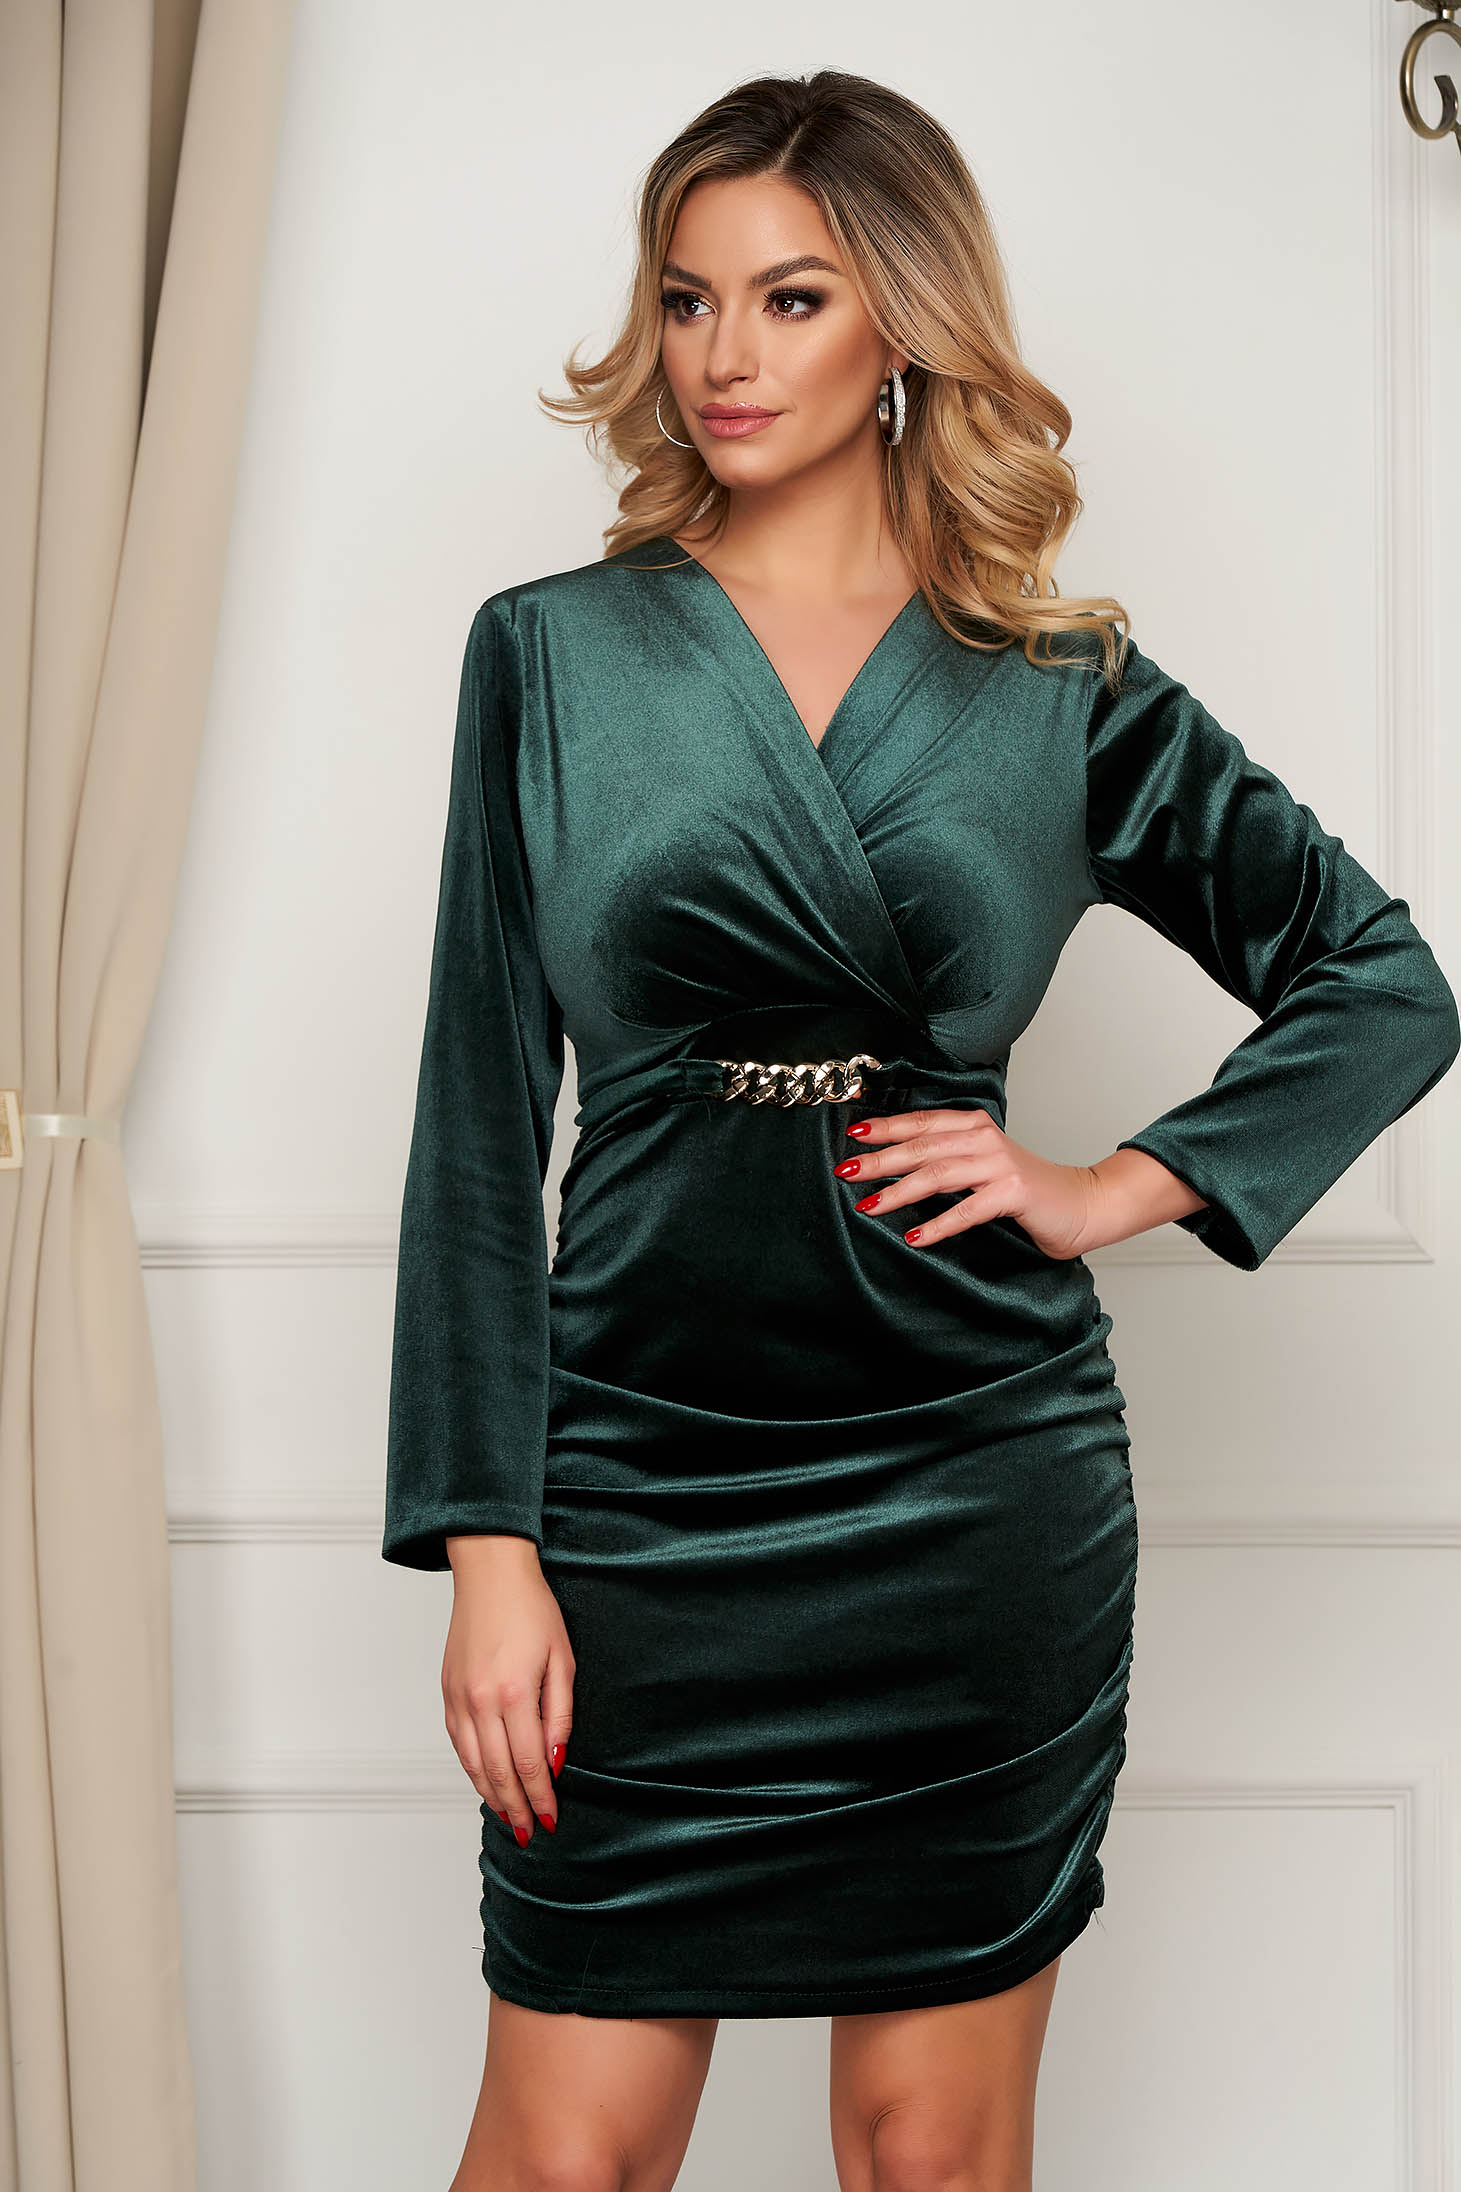 Green dress velvet occasional wrap over front metallic chain accessory